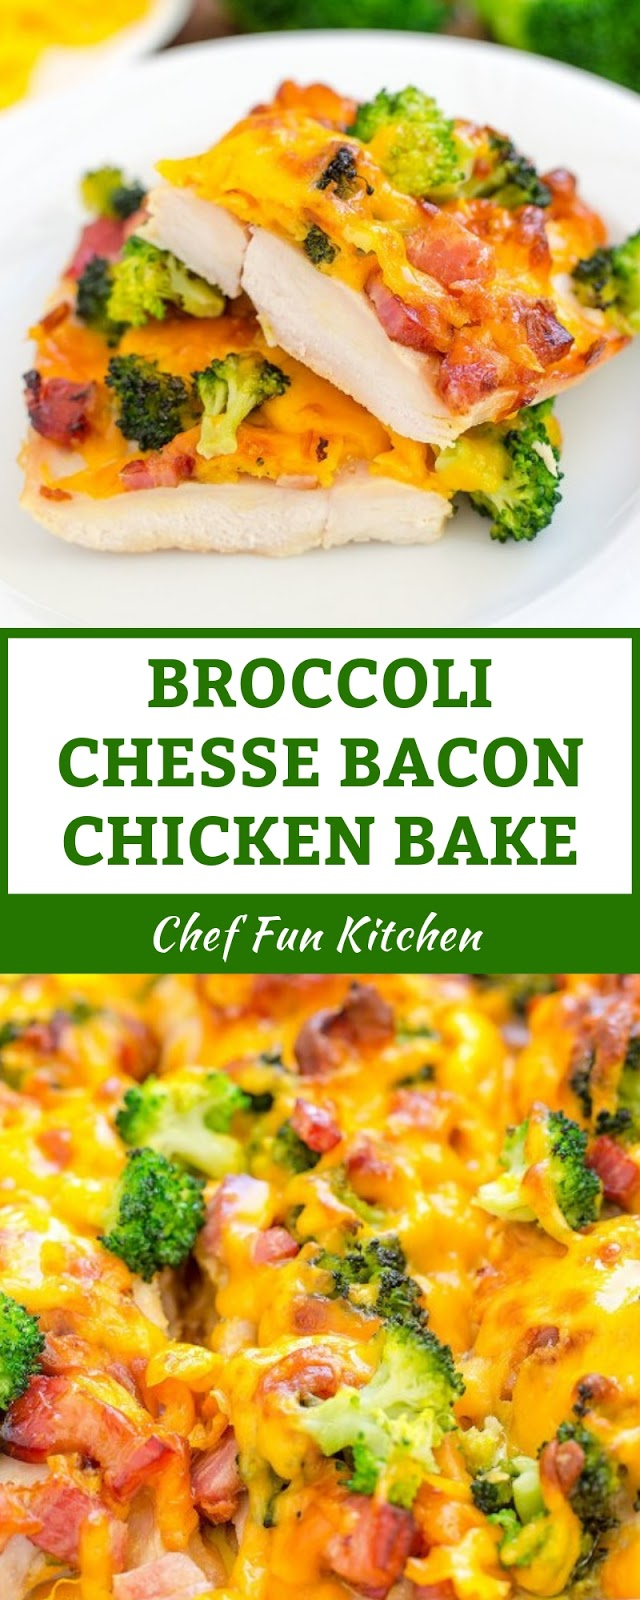 BROCCOLI CHESSE BACON CHICKEN BAKE